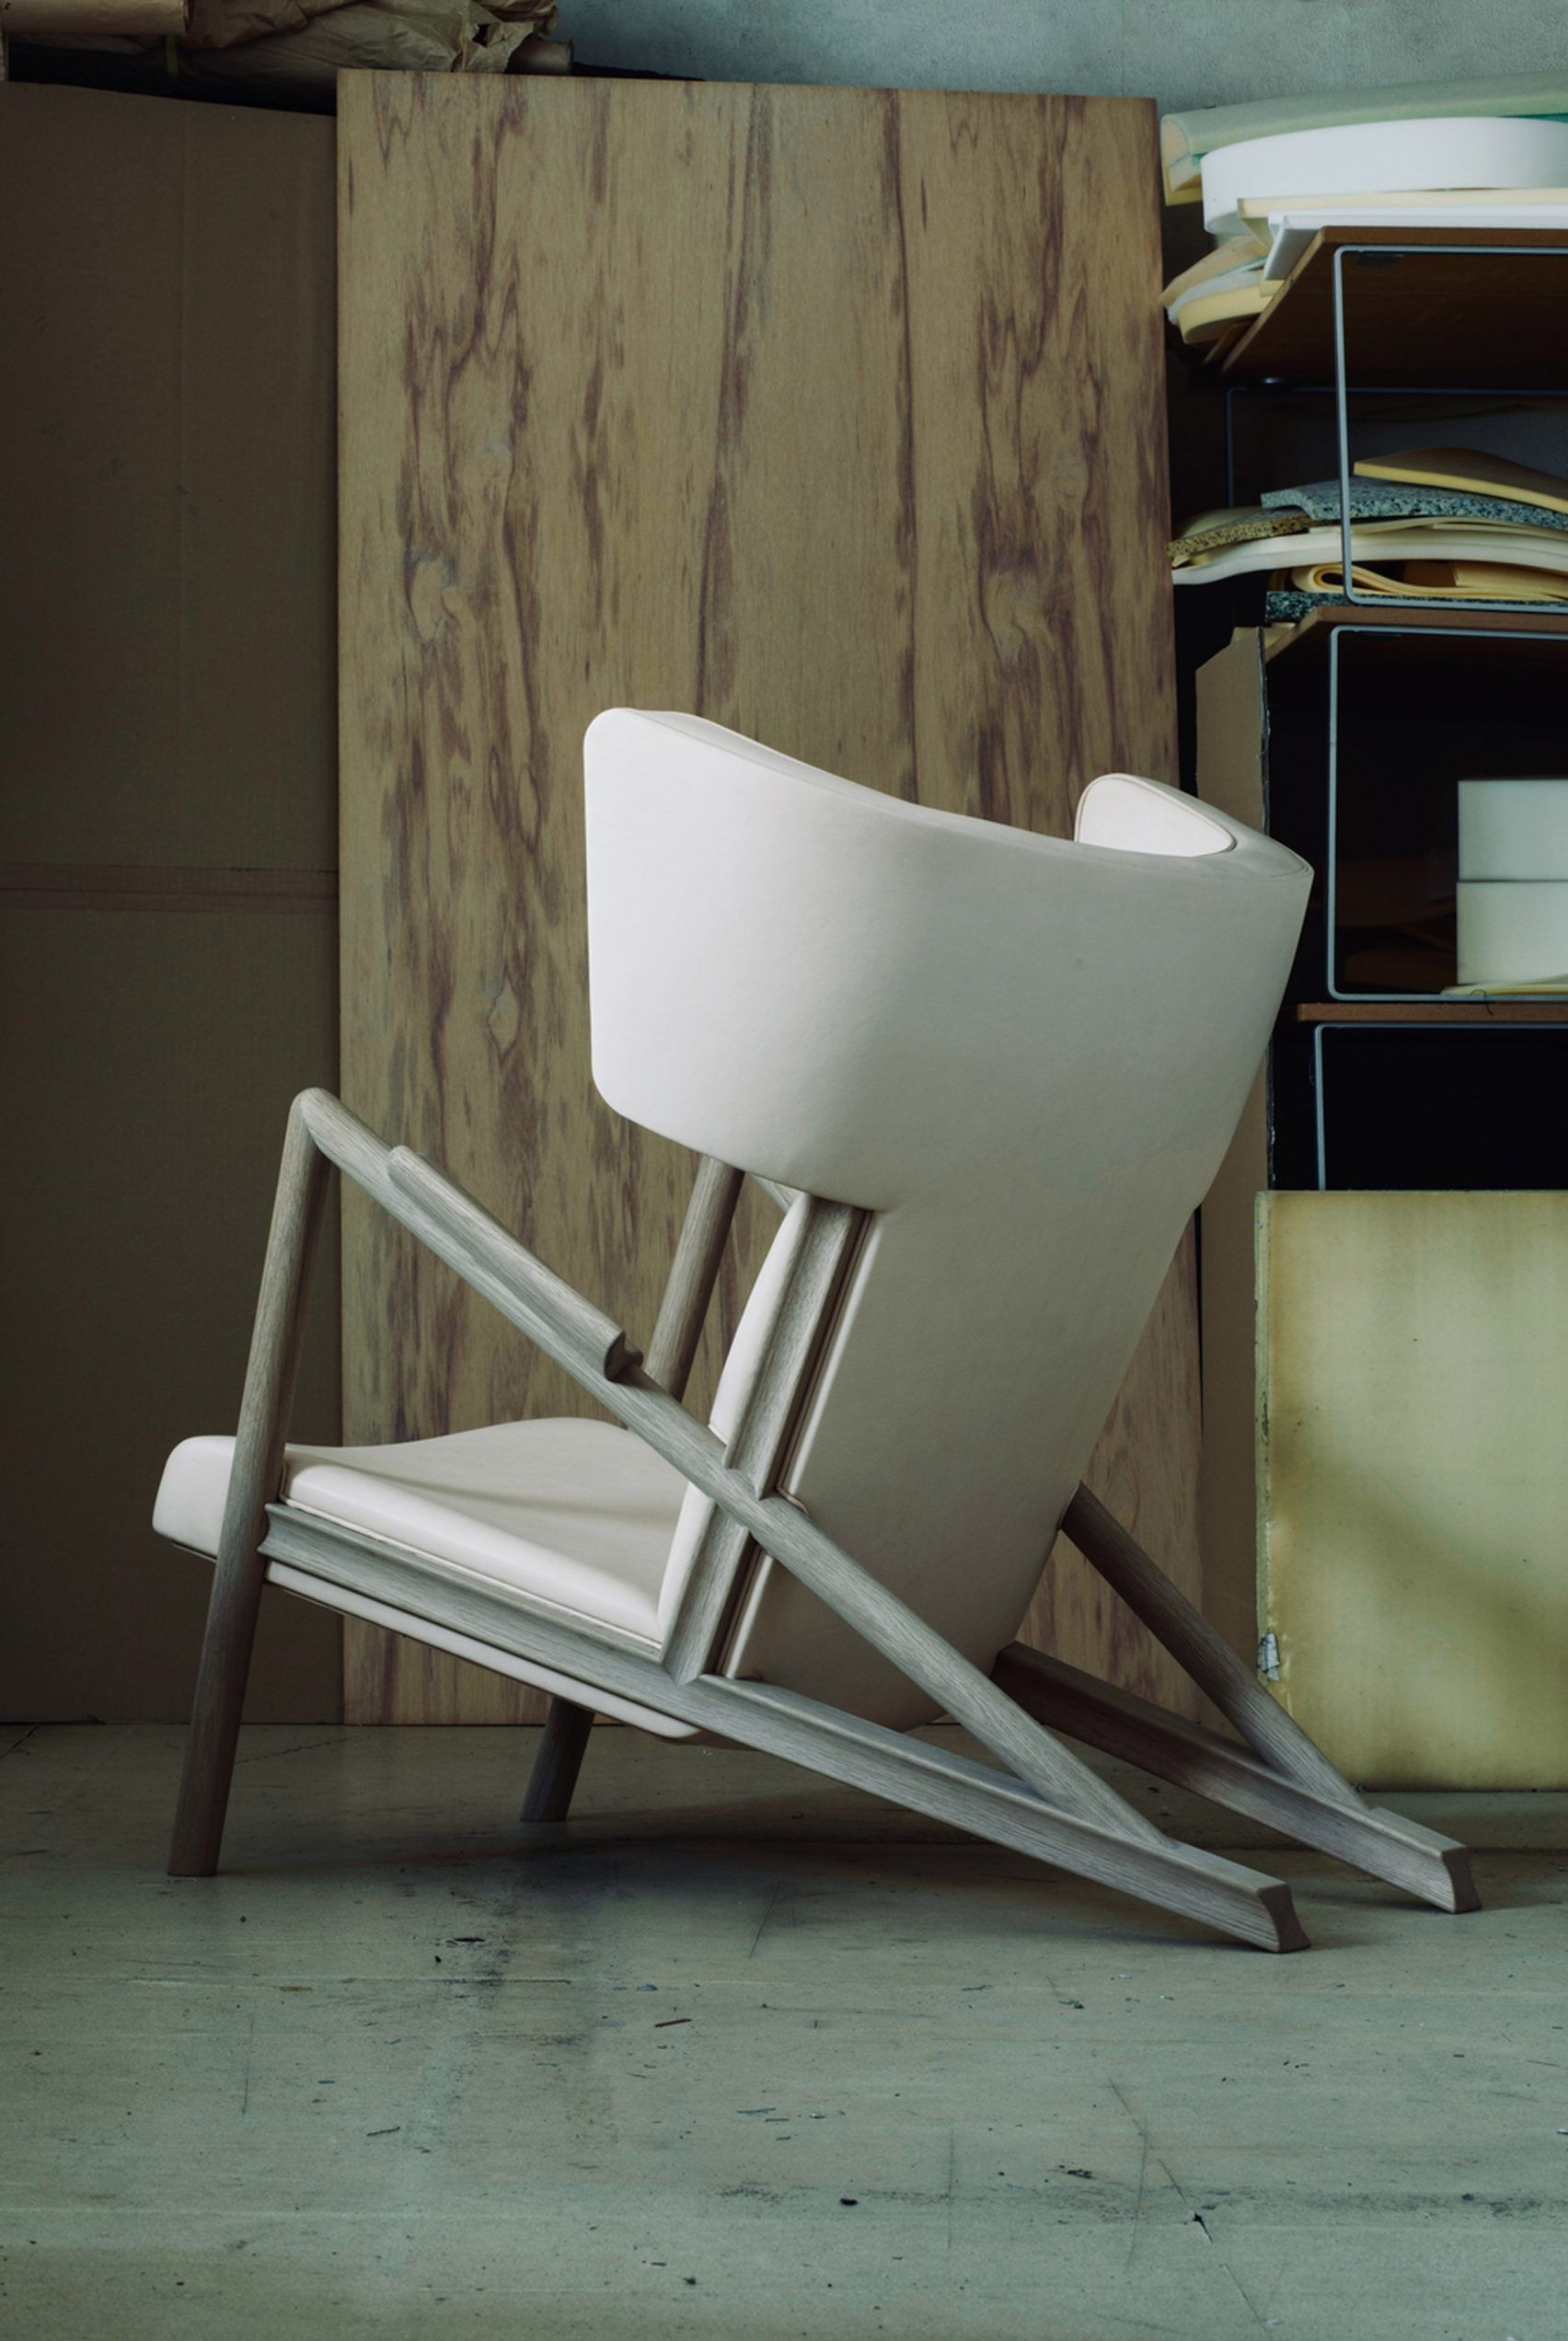 House of Finn Juhl reproduces the chair from